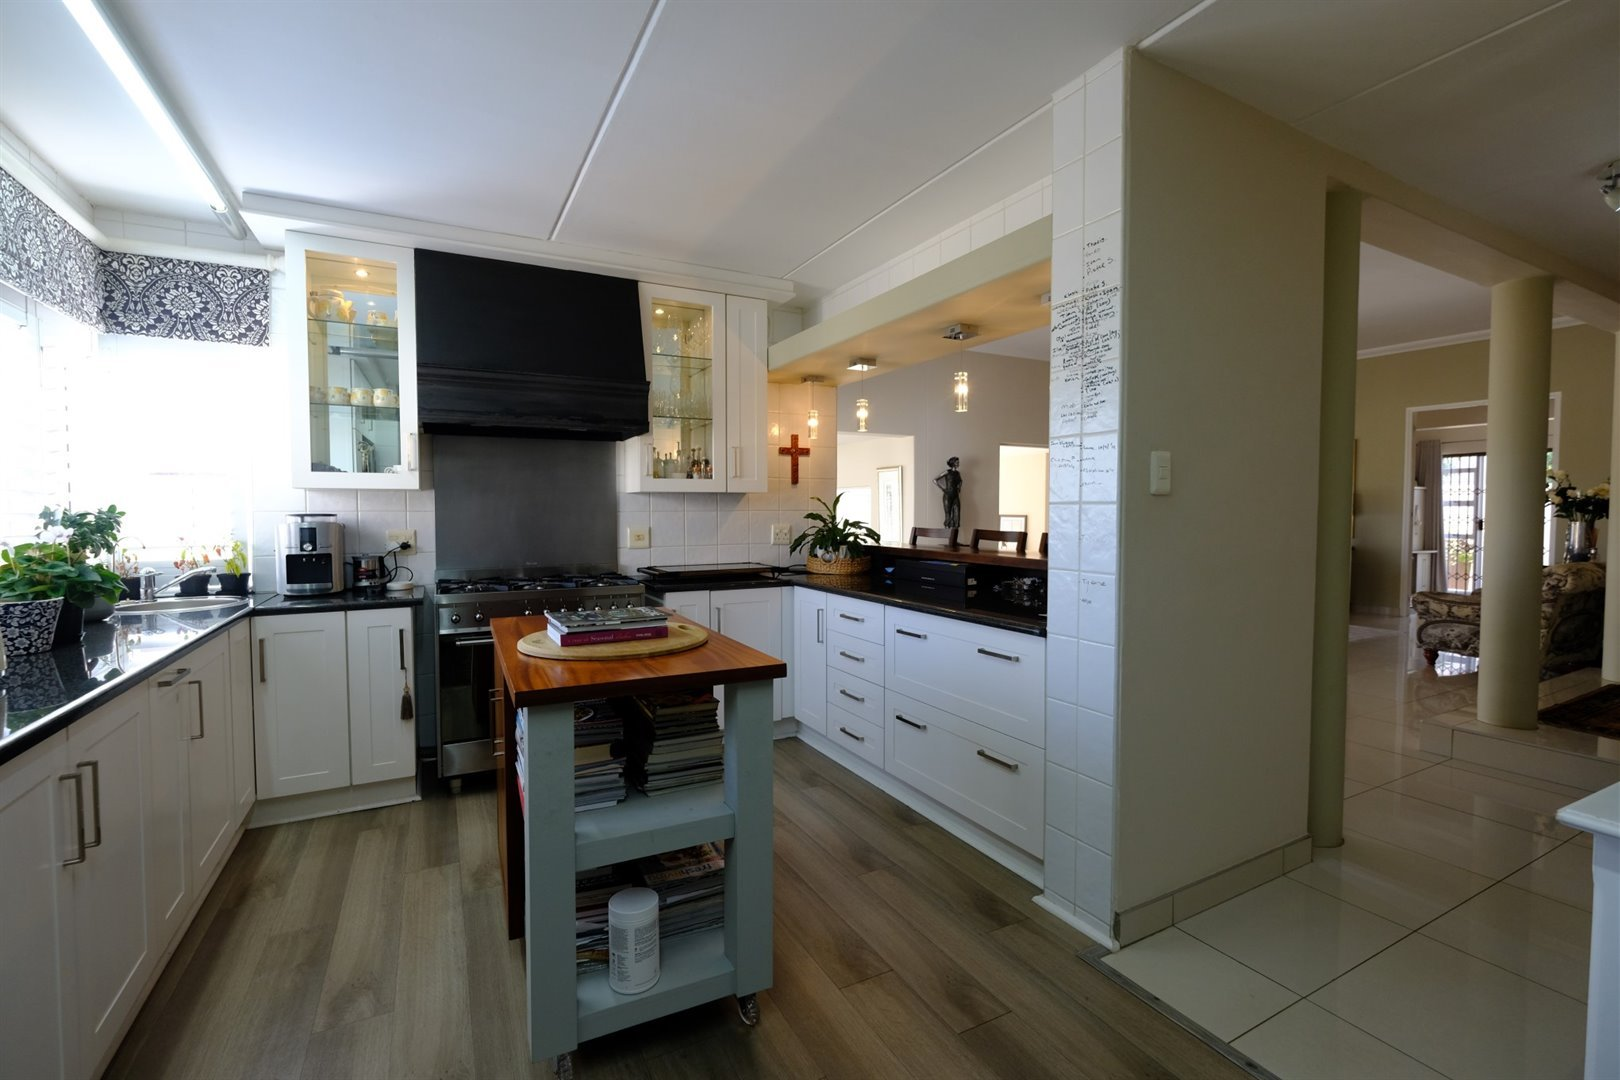 Three Rivers East property for sale. Ref No: 13378538. Picture no 8